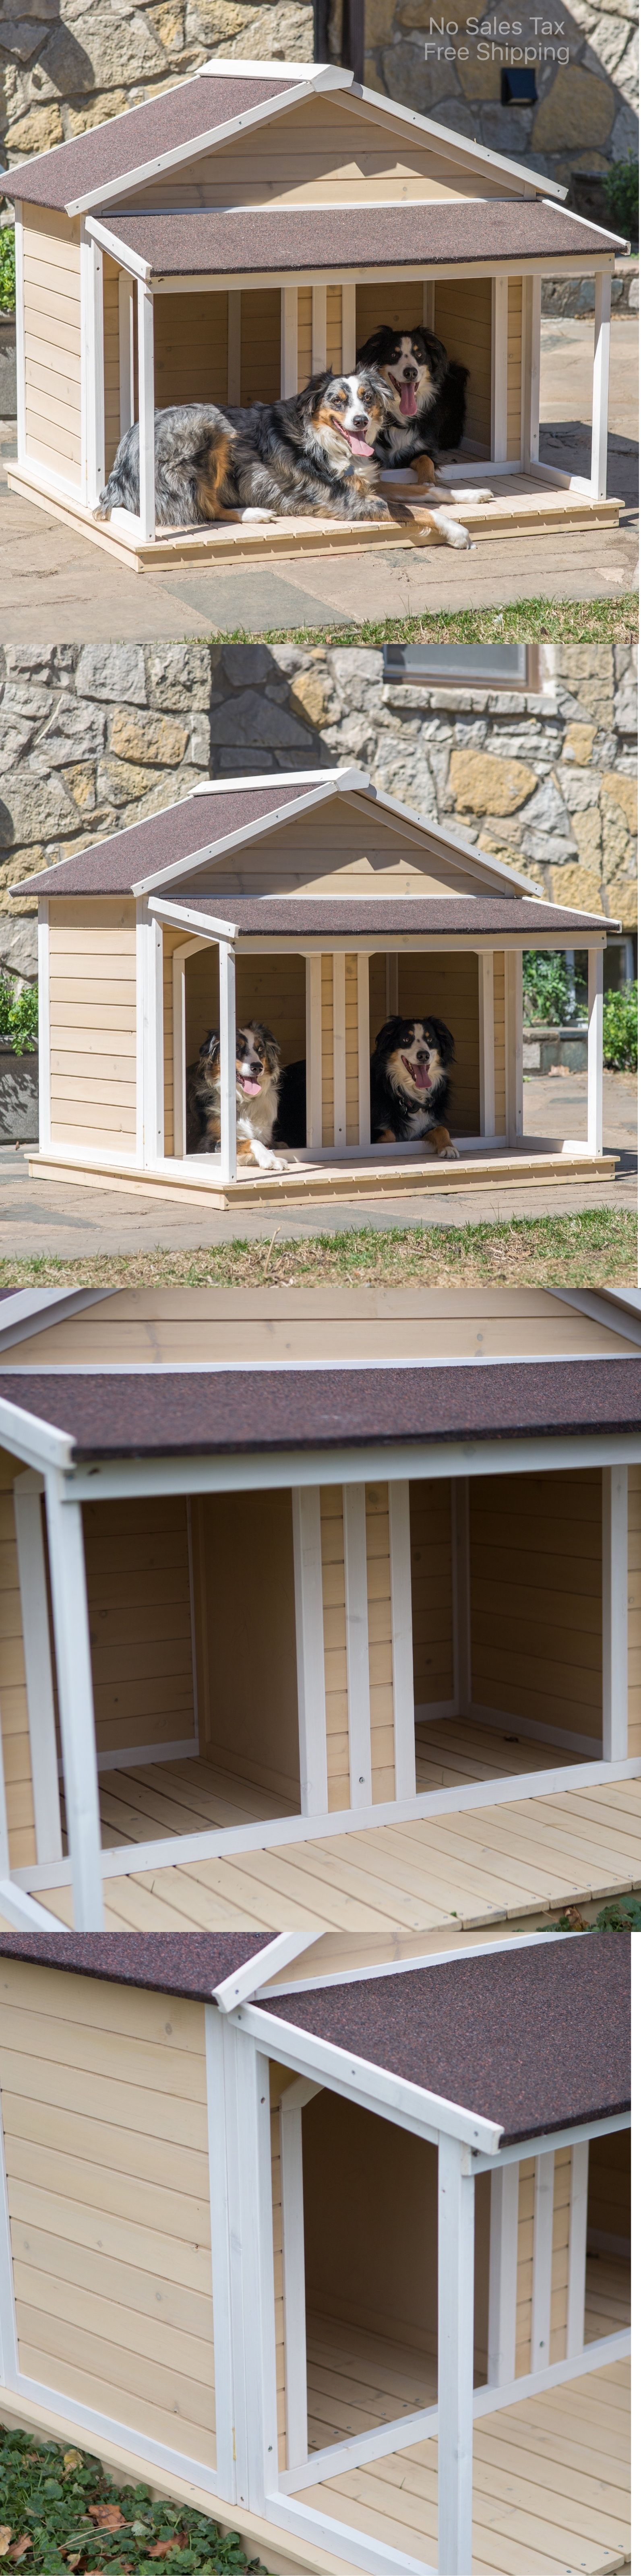 Dog Houses 108884 Duplex Dog House Dog Houses For Two Dogs Double Medium Pet Shelter Cage Kennel Buy It Now Only Cool Dog Houses Dog Kennel Cover Dog House